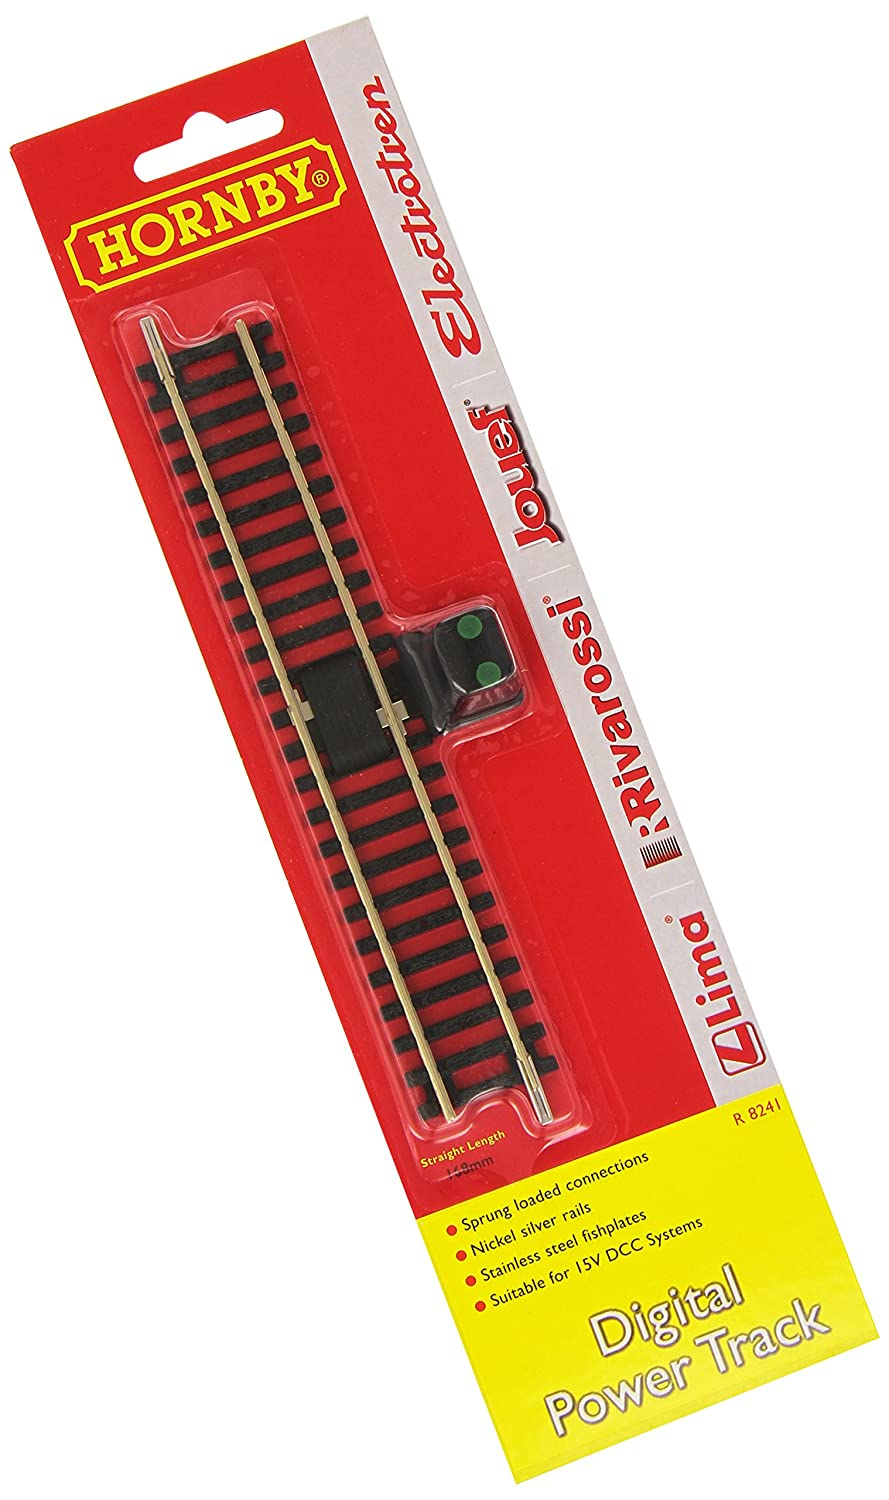 Hornby r8241 digital power track dcc accessory amazon toys hornby r8241 digital power track dcc accessory amazon toys games asfbconference2016 Image collections